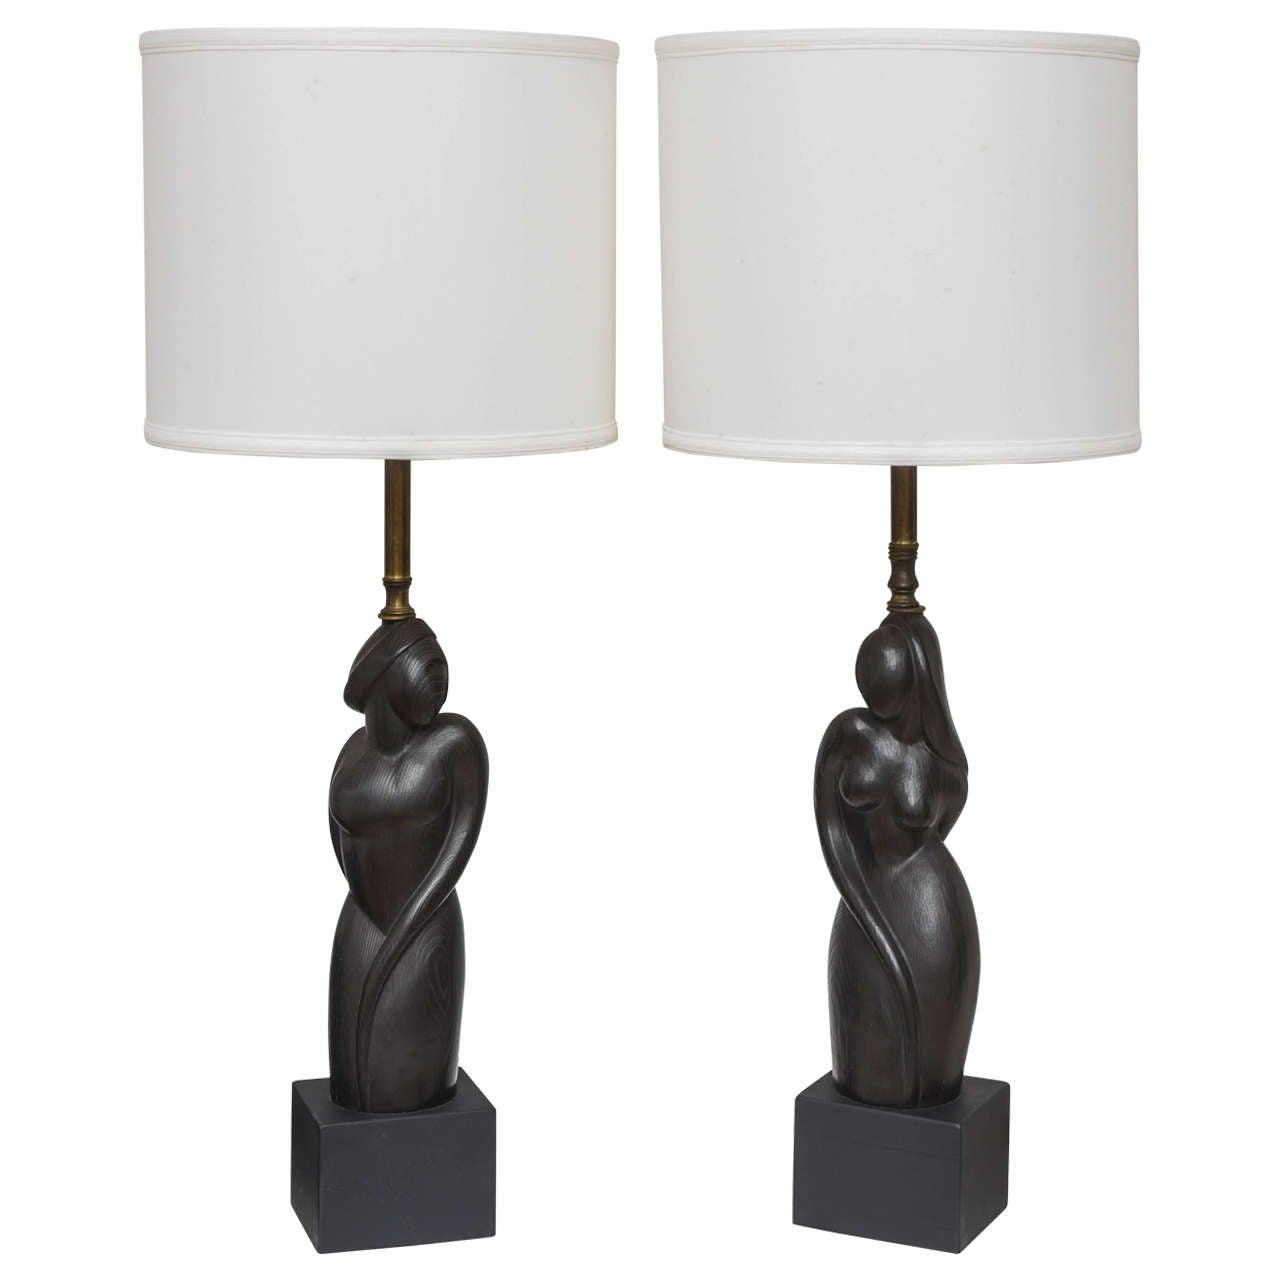 Pair Of Art Deco Style Table Lamps With Male And Female Torsos Mid Century